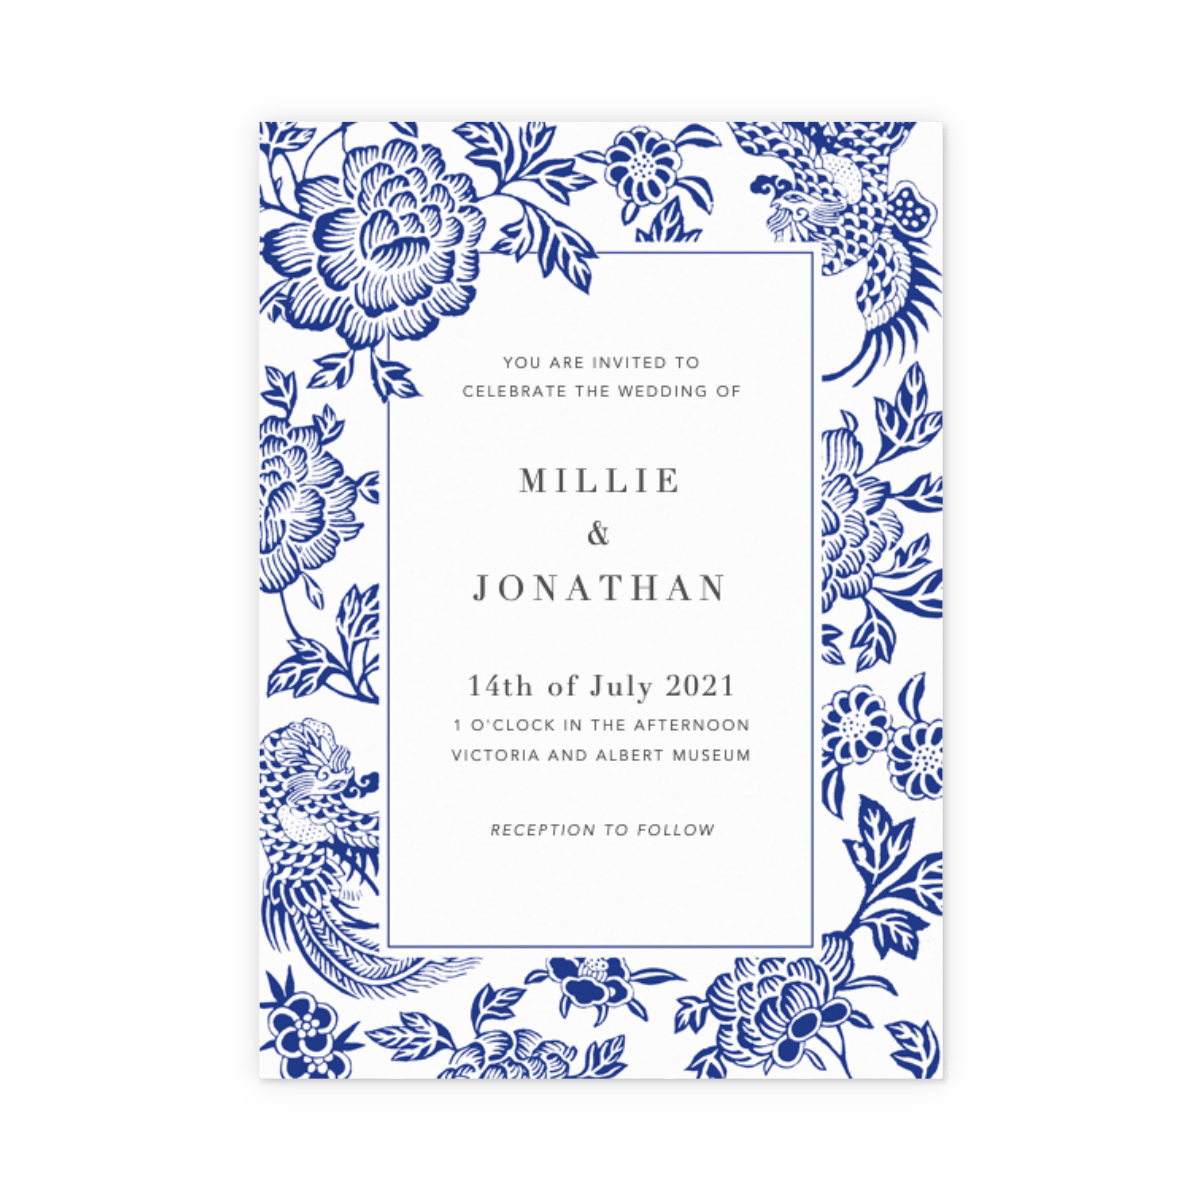 Https%3a%2f%2fwww.papier.com%2fproduct image%2f101326%2f4%2fornate blue florals invx2 25964 front 1579024972.png?ixlib=rb 1.1